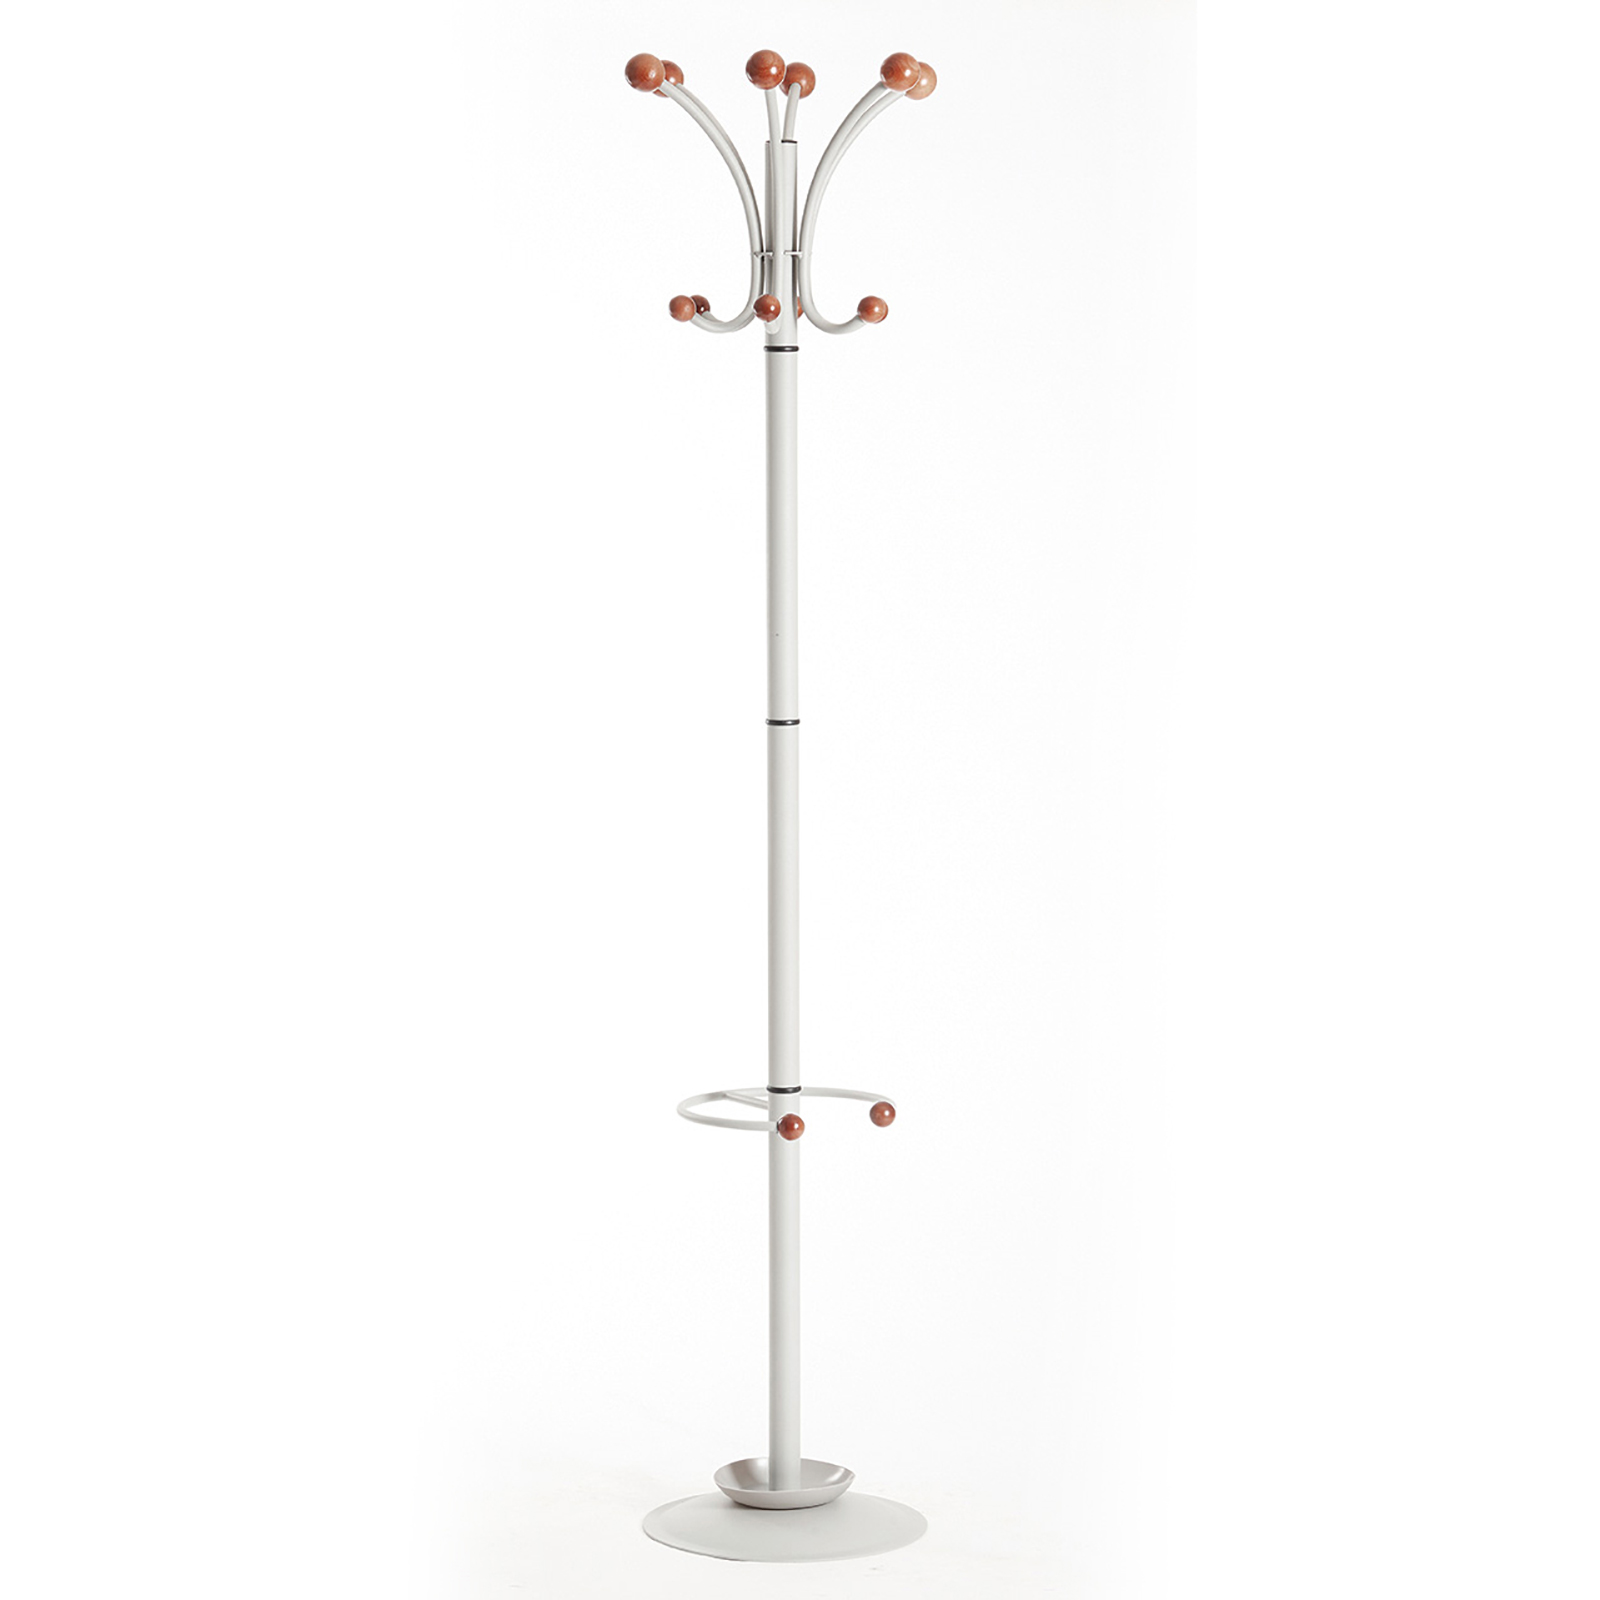 Umbrella Stands Coat & umbrella stand with 12 coat hooks and 4 umbrella hooks 1840mm high - silver